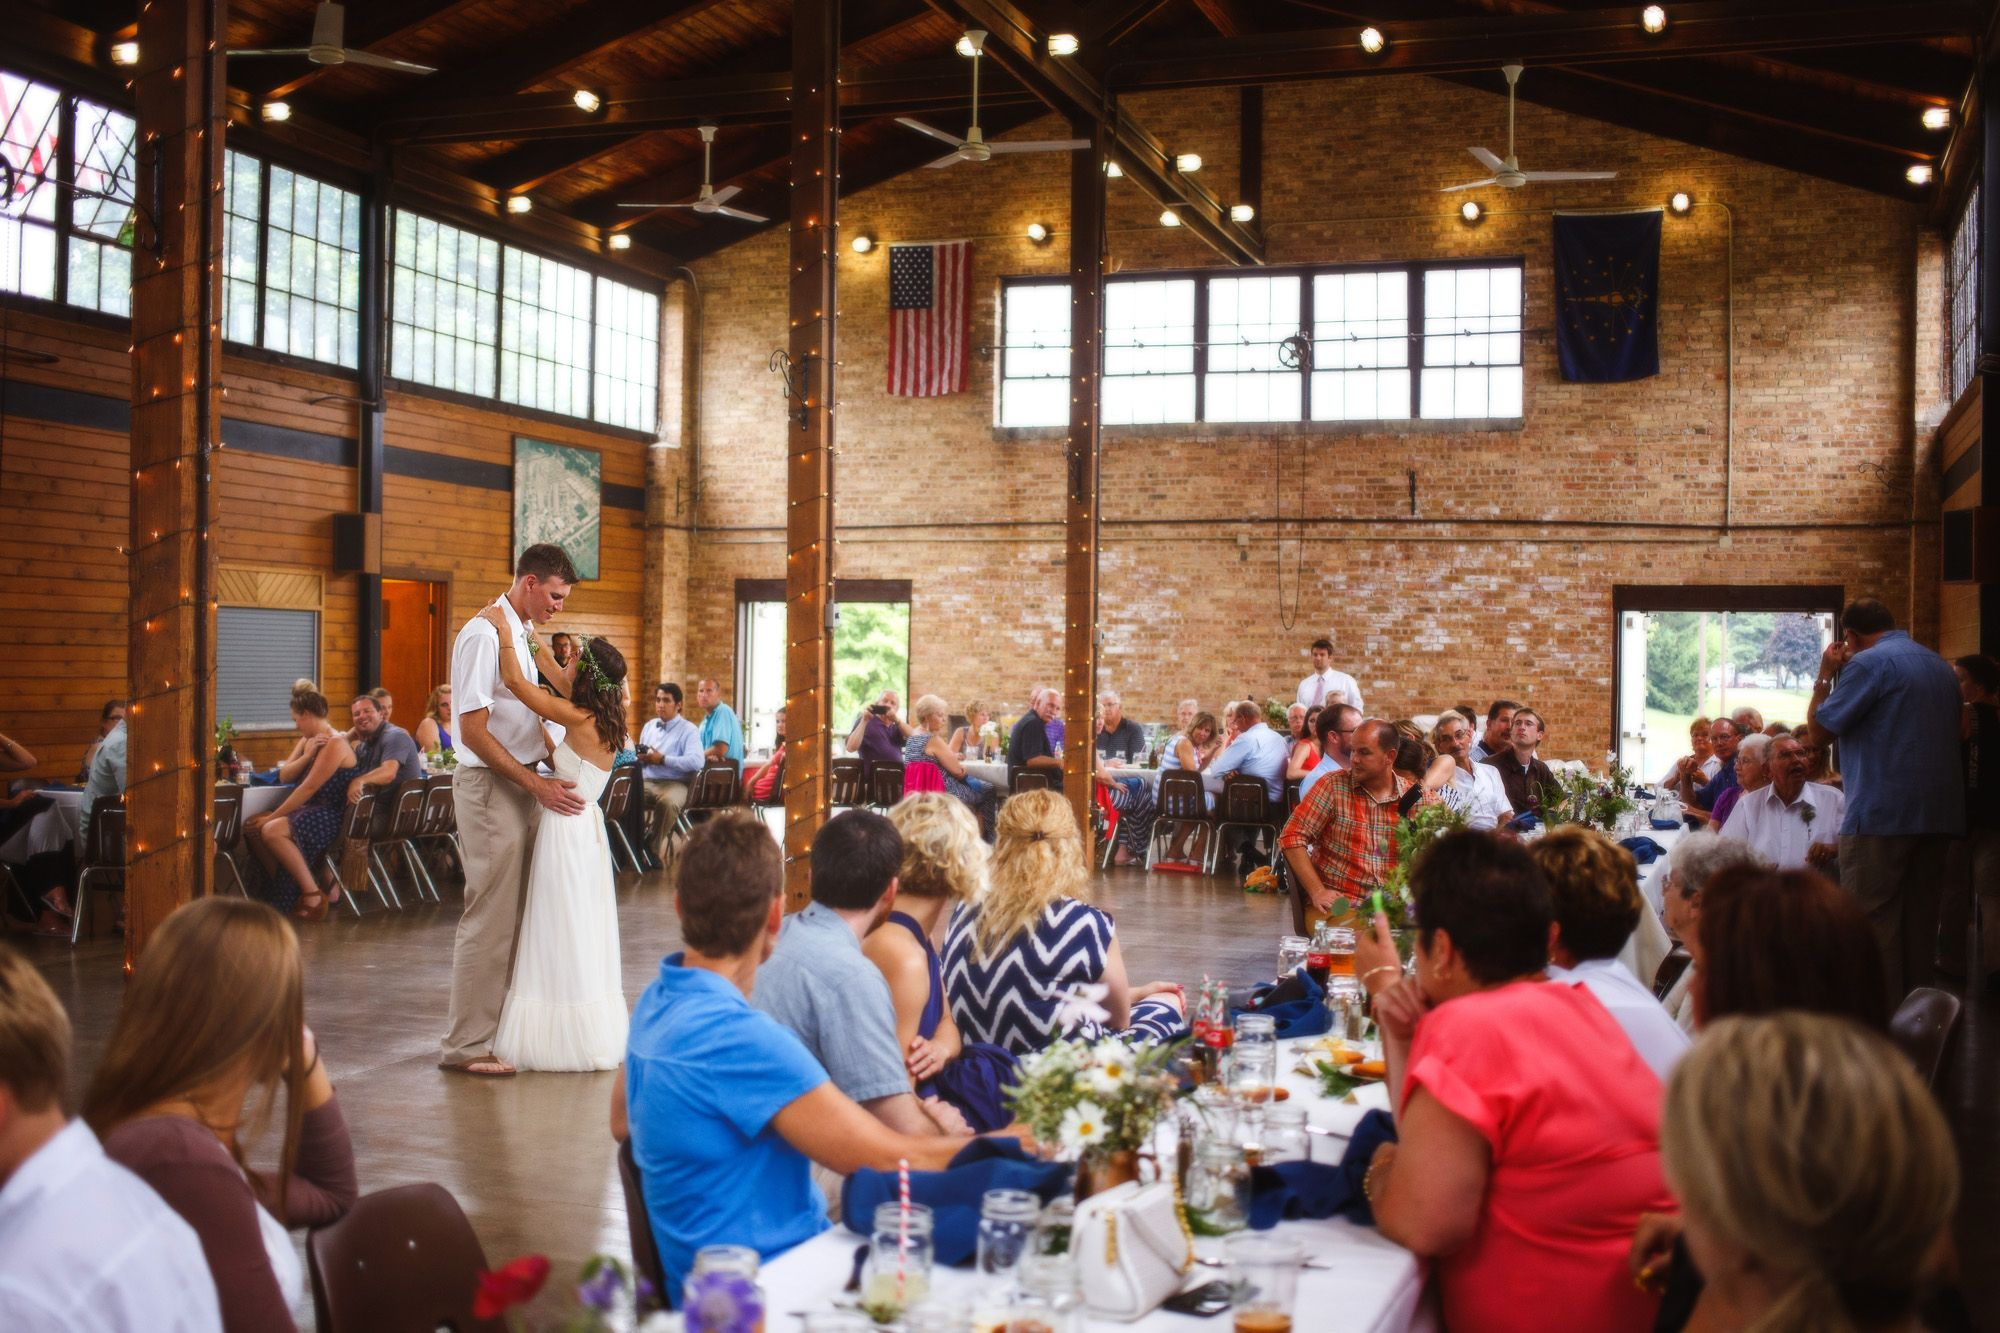 Erfield Family Pavilion In Valparaiso Indiana Dunes Weddings